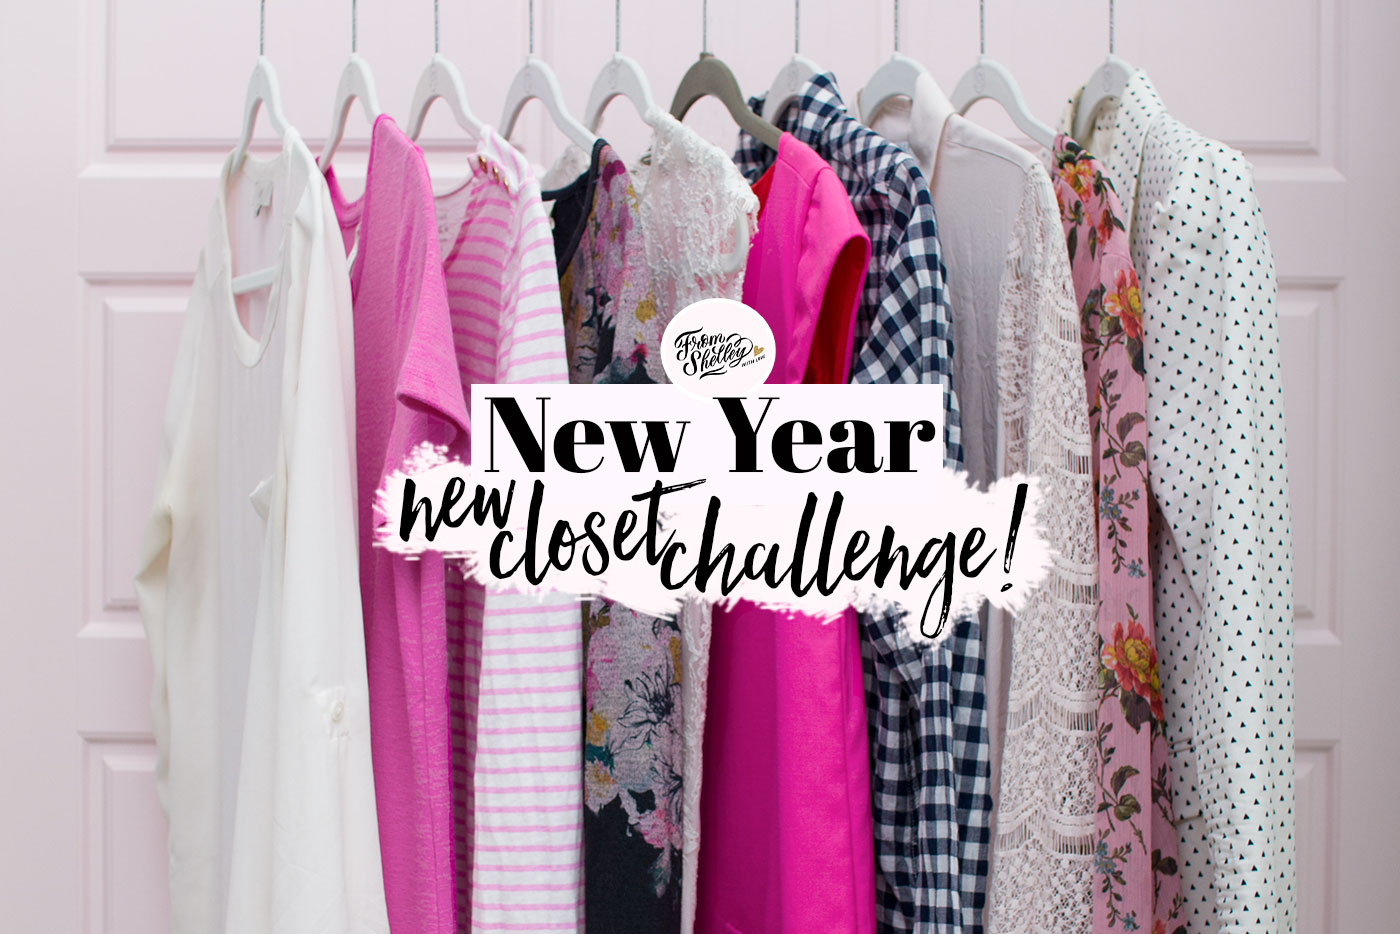 join the 2018 closet cleanse challenge